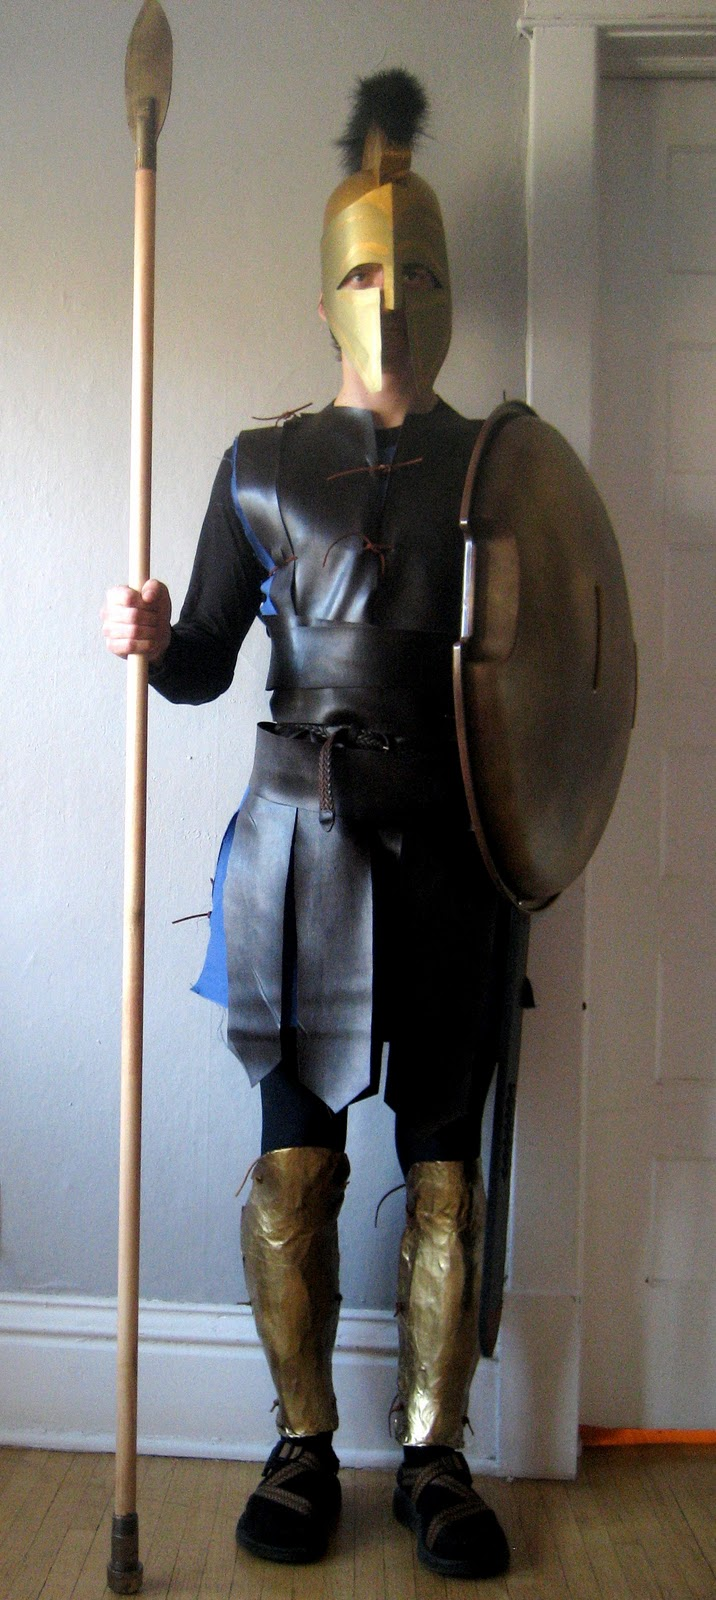 Chuck Does Art DIY Spartan Hoplite Costume How to make a faux-leather Linothorax inspired by Gladiator costume no sewing required! & Chuck Does Art: DIY Spartan Hoplite Costume: How to make a faux ...